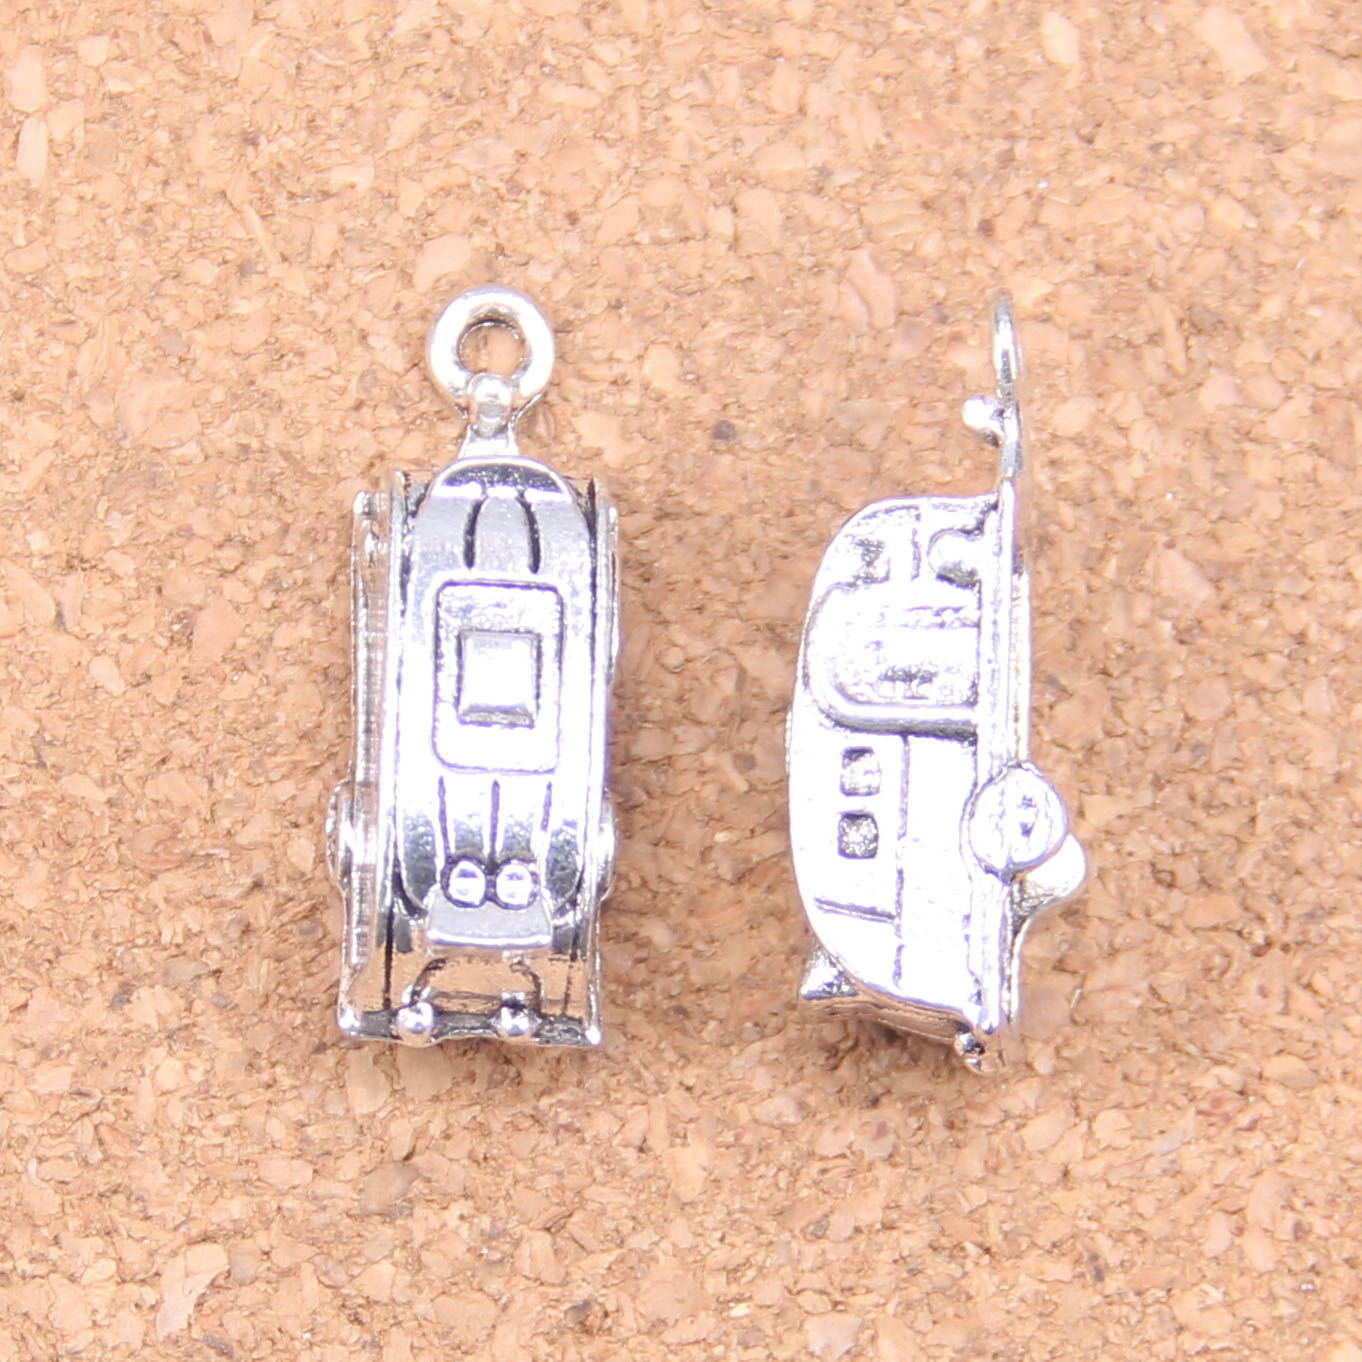 Frank 30pcs Charms Shuttle Trailer Touring 26x7x6mm Antique Pendants,vintage Tibetan Silver Jewelry,diy For Bracelet Necklace Up-To-Date Styling